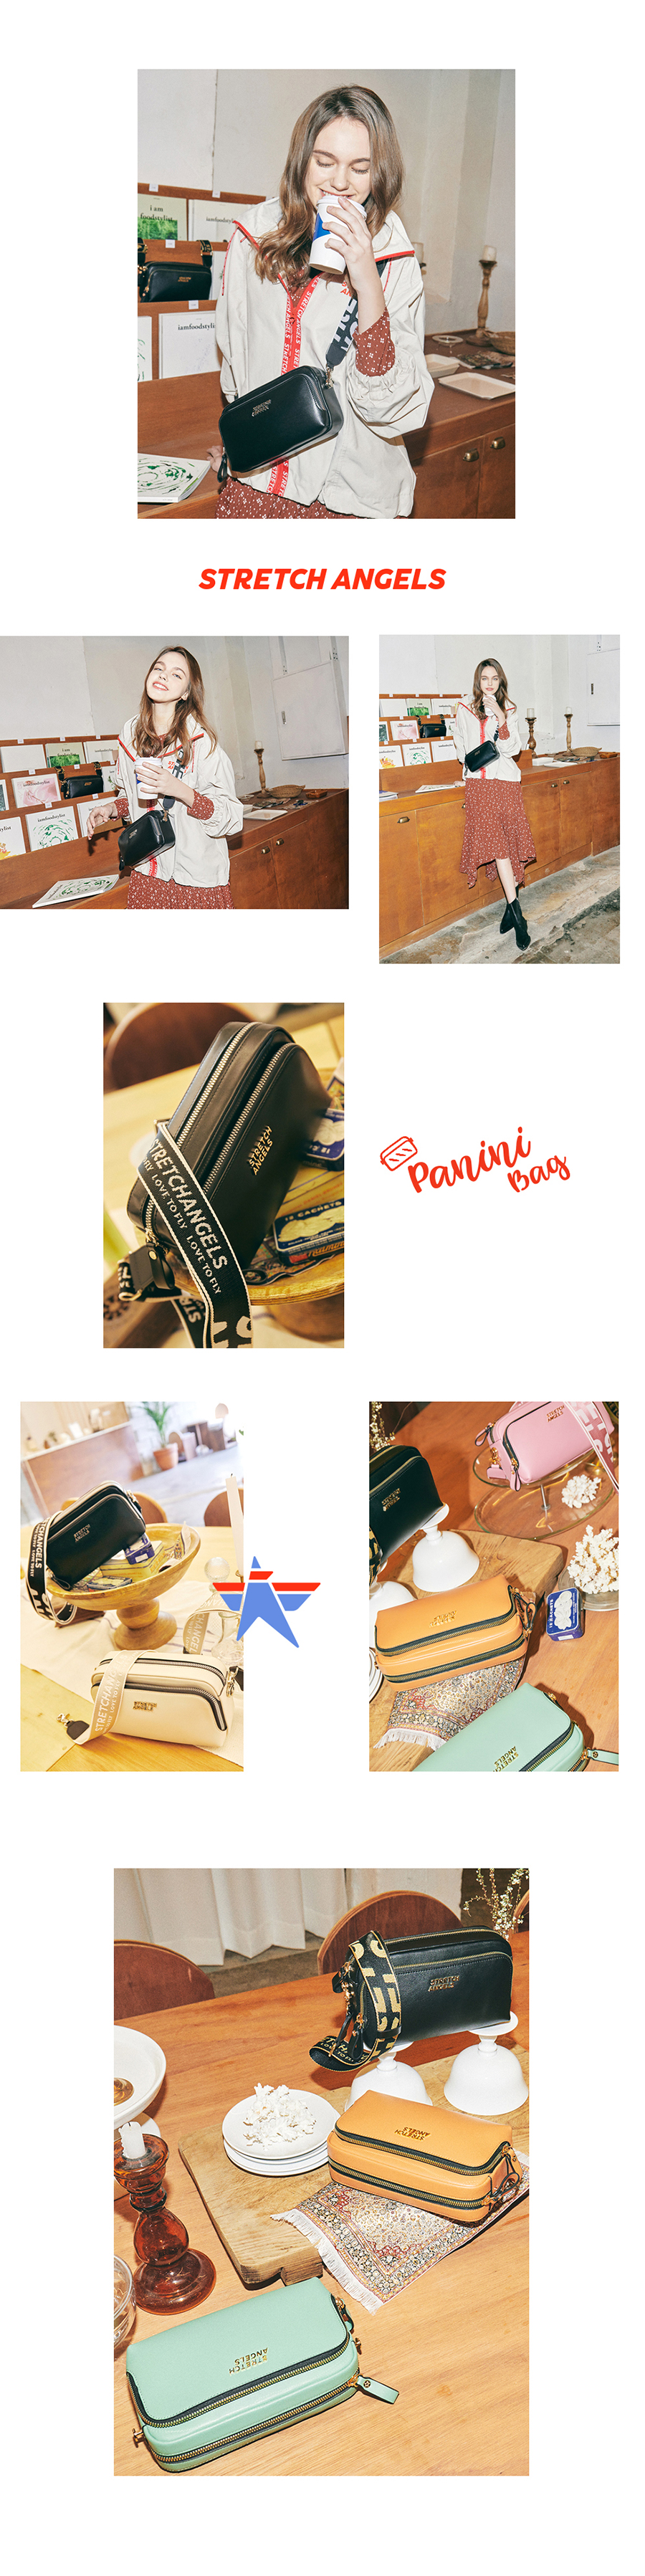 스트레치 엔젤스(STRETCH ANGELS) PANINI metal logo solid bag (Black)